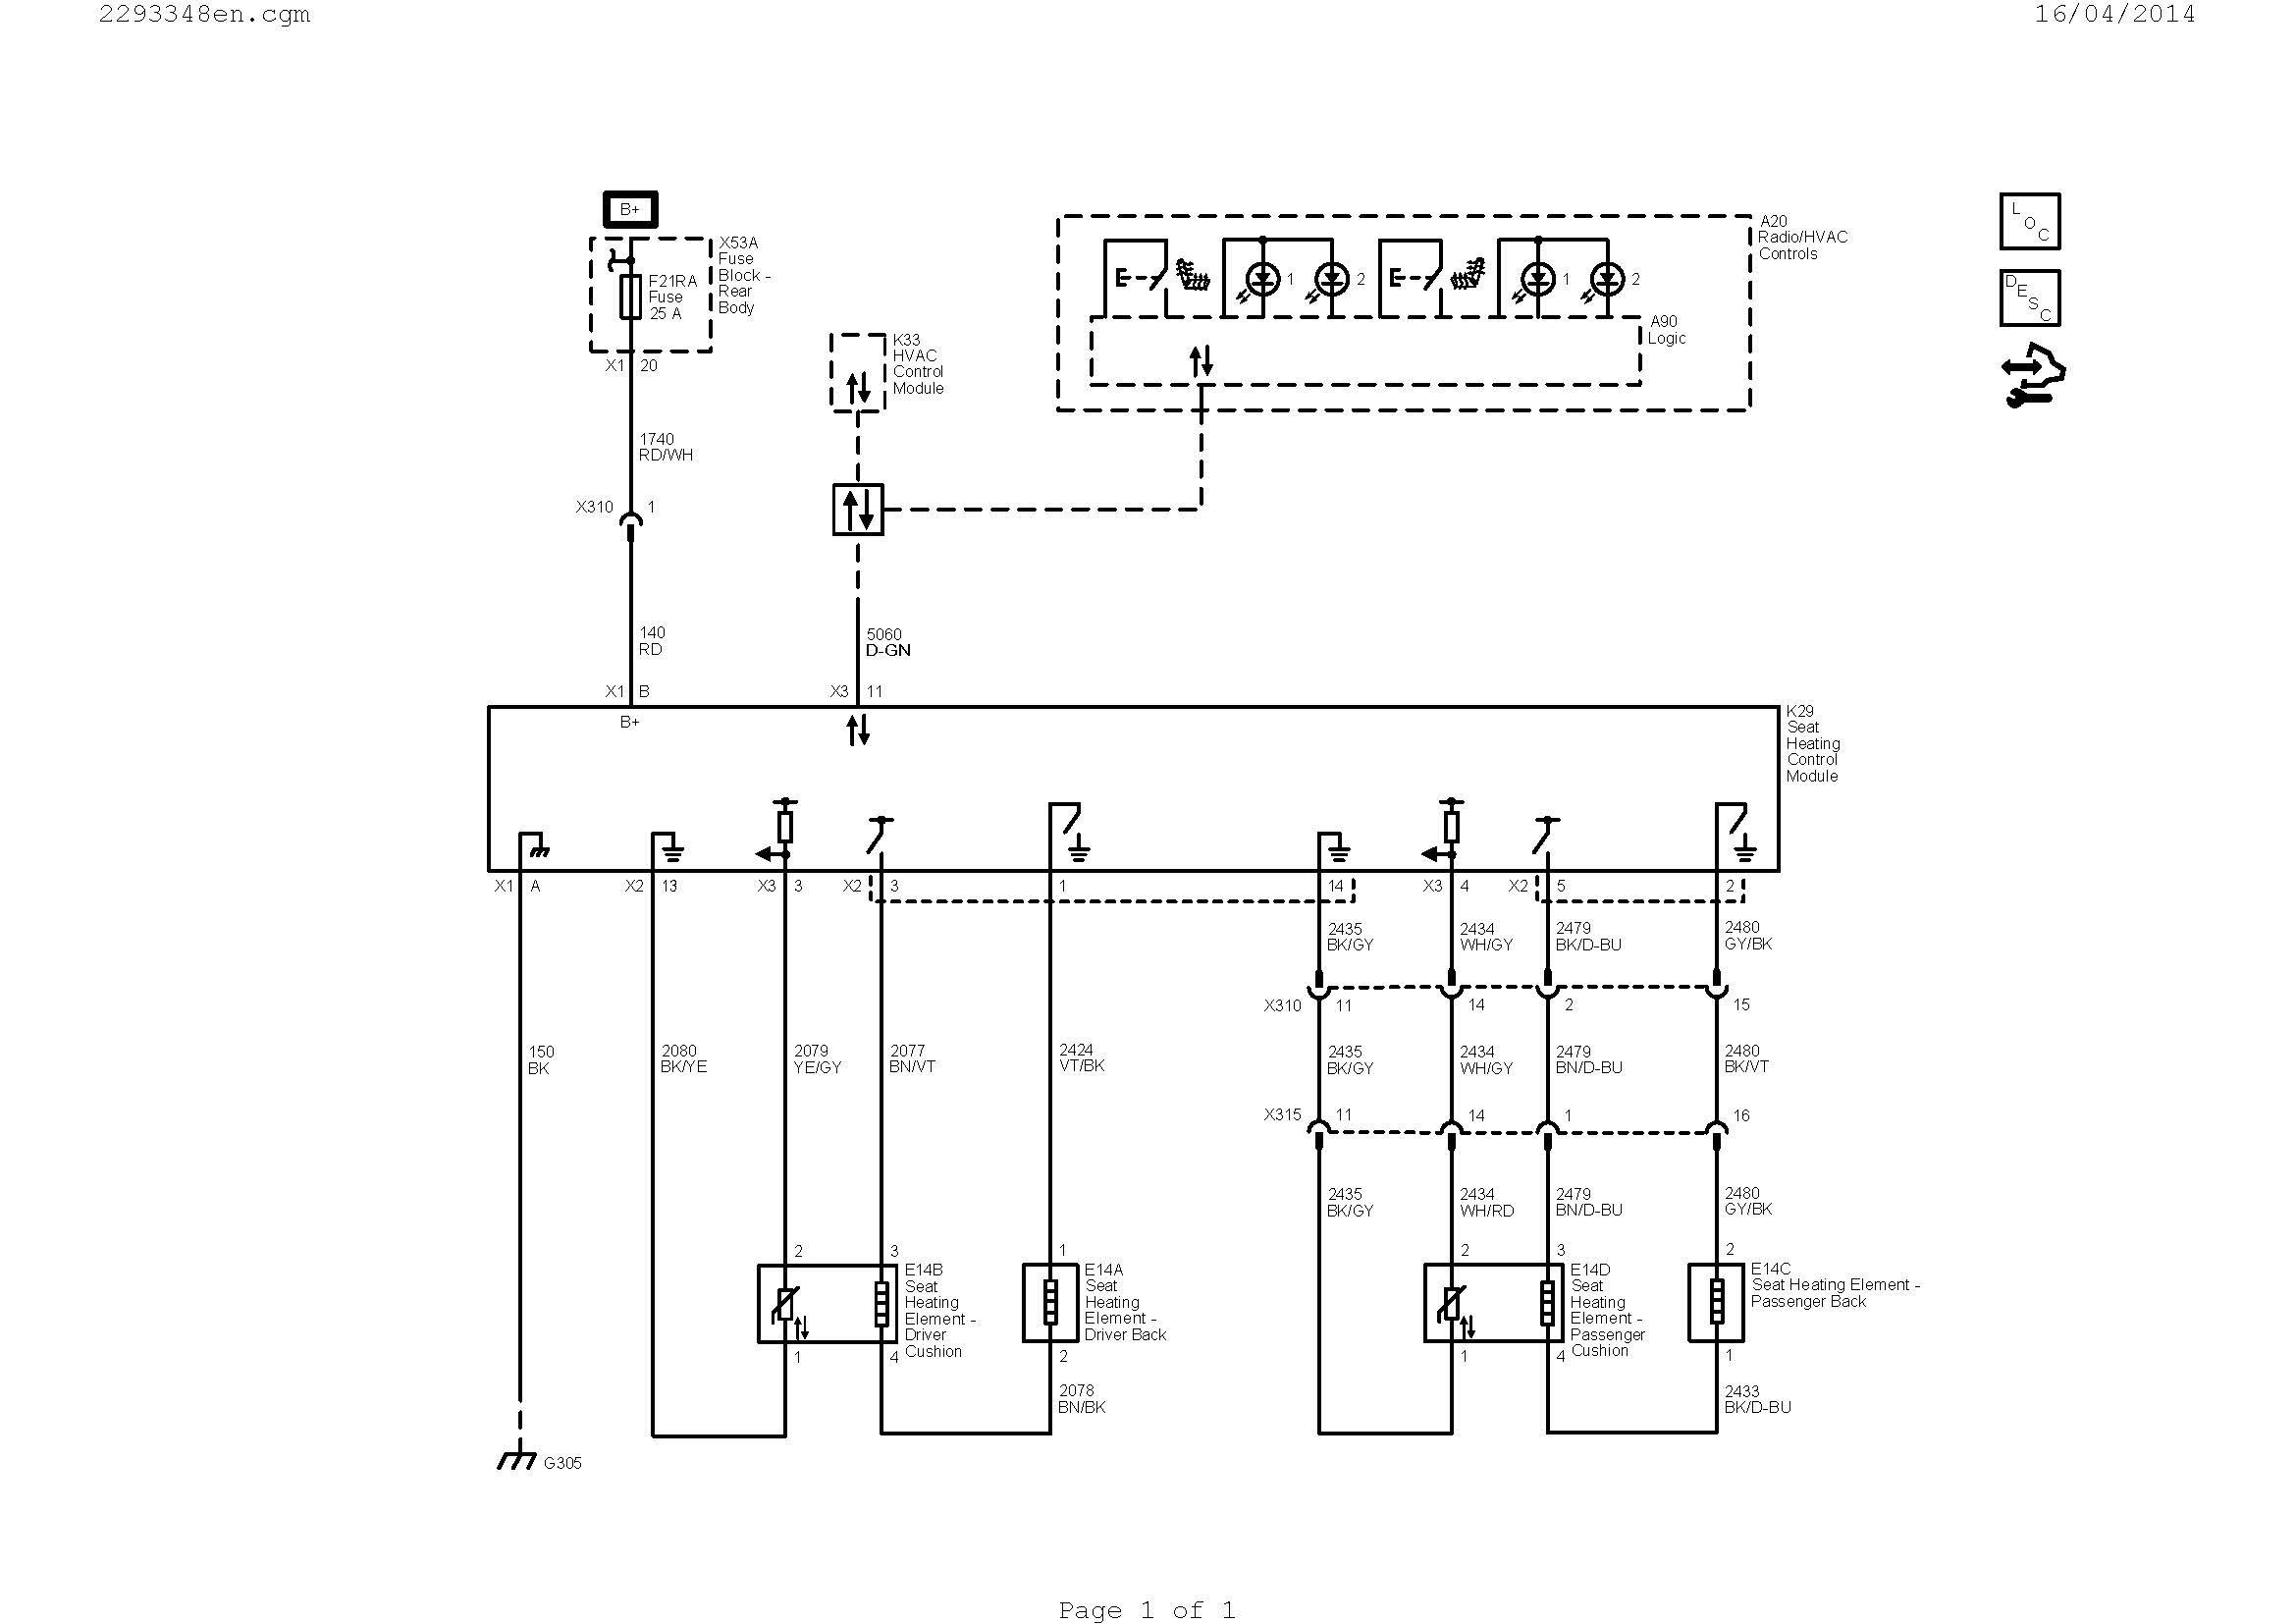 Wiring Diagram Sheets Detail: Name: ge furnace blower motor wiring diagram  – air conditioner thermostat wiring diagram ...